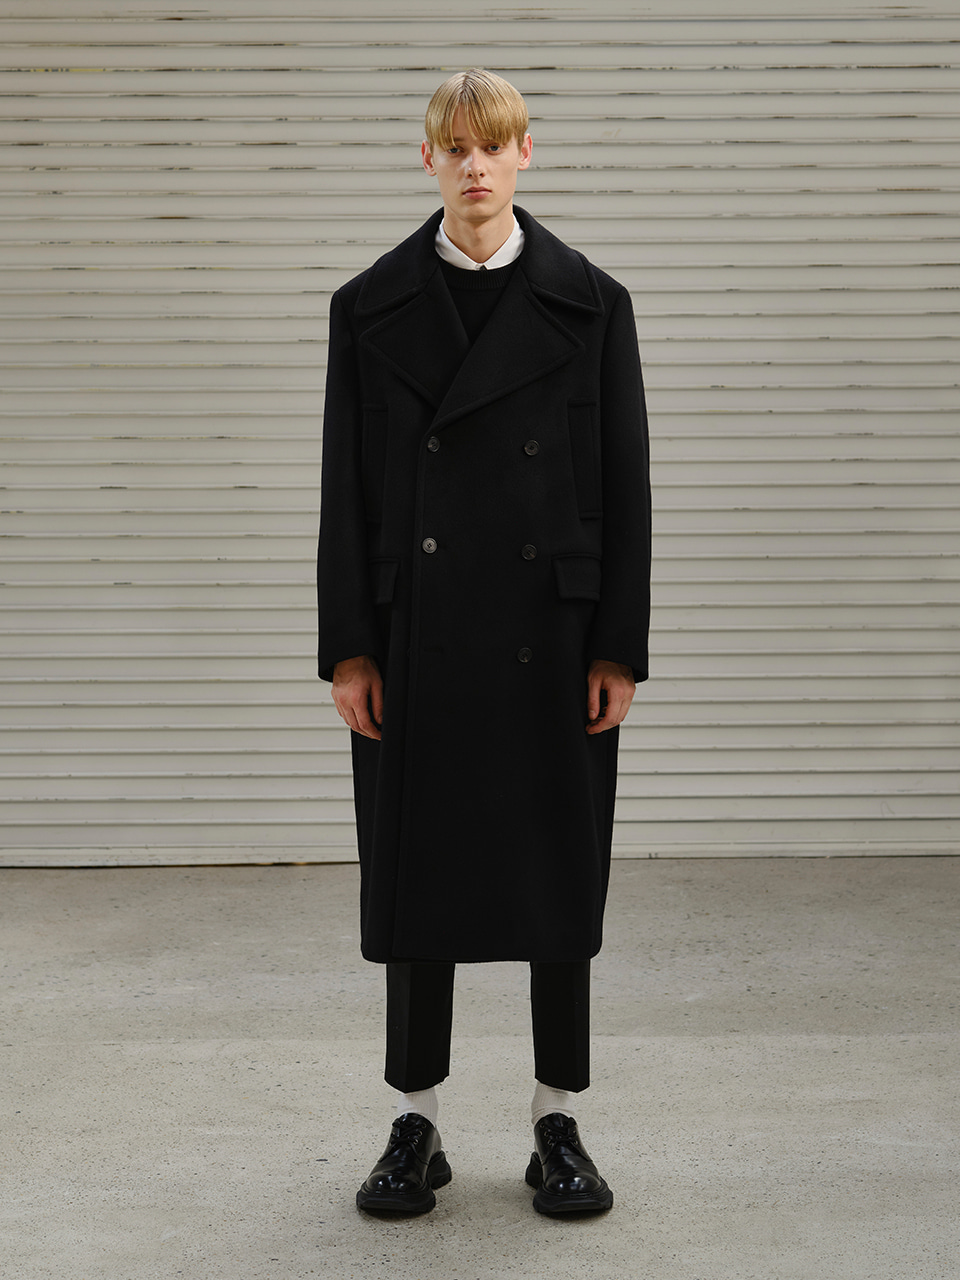 [FW20] DOUBLE CASHMERE OVER COAT(Black) IEY [FW20] DOUBLE CASHMERE OVER COAT(Black)